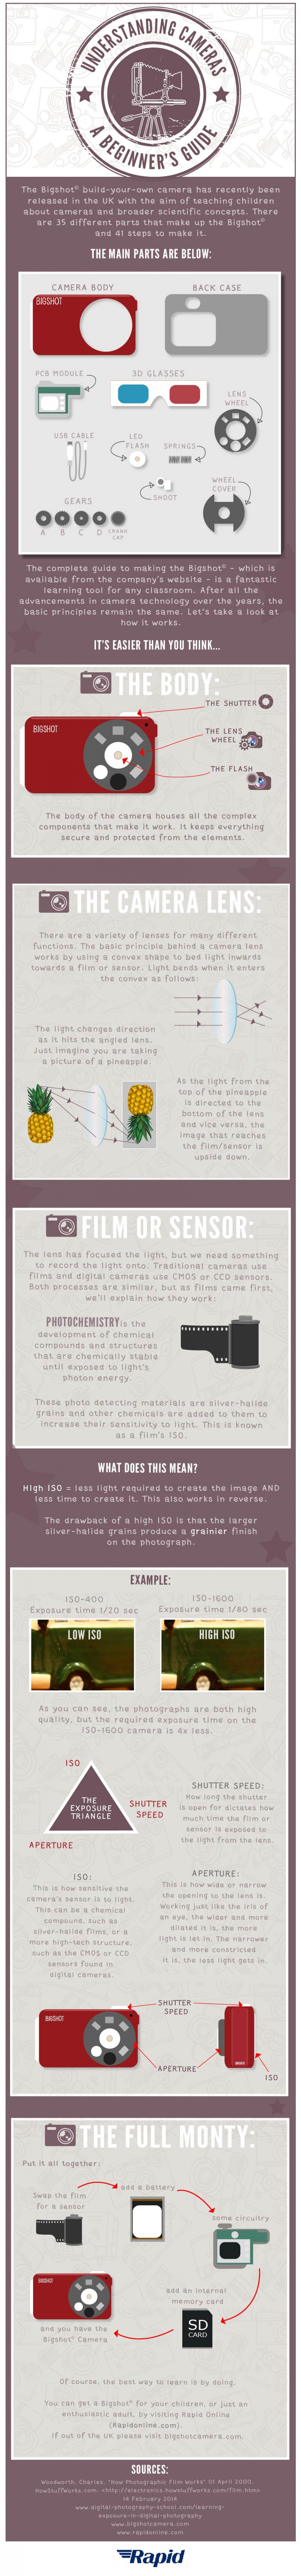 A Beginner's Guide to Understanding Cameras Infographic